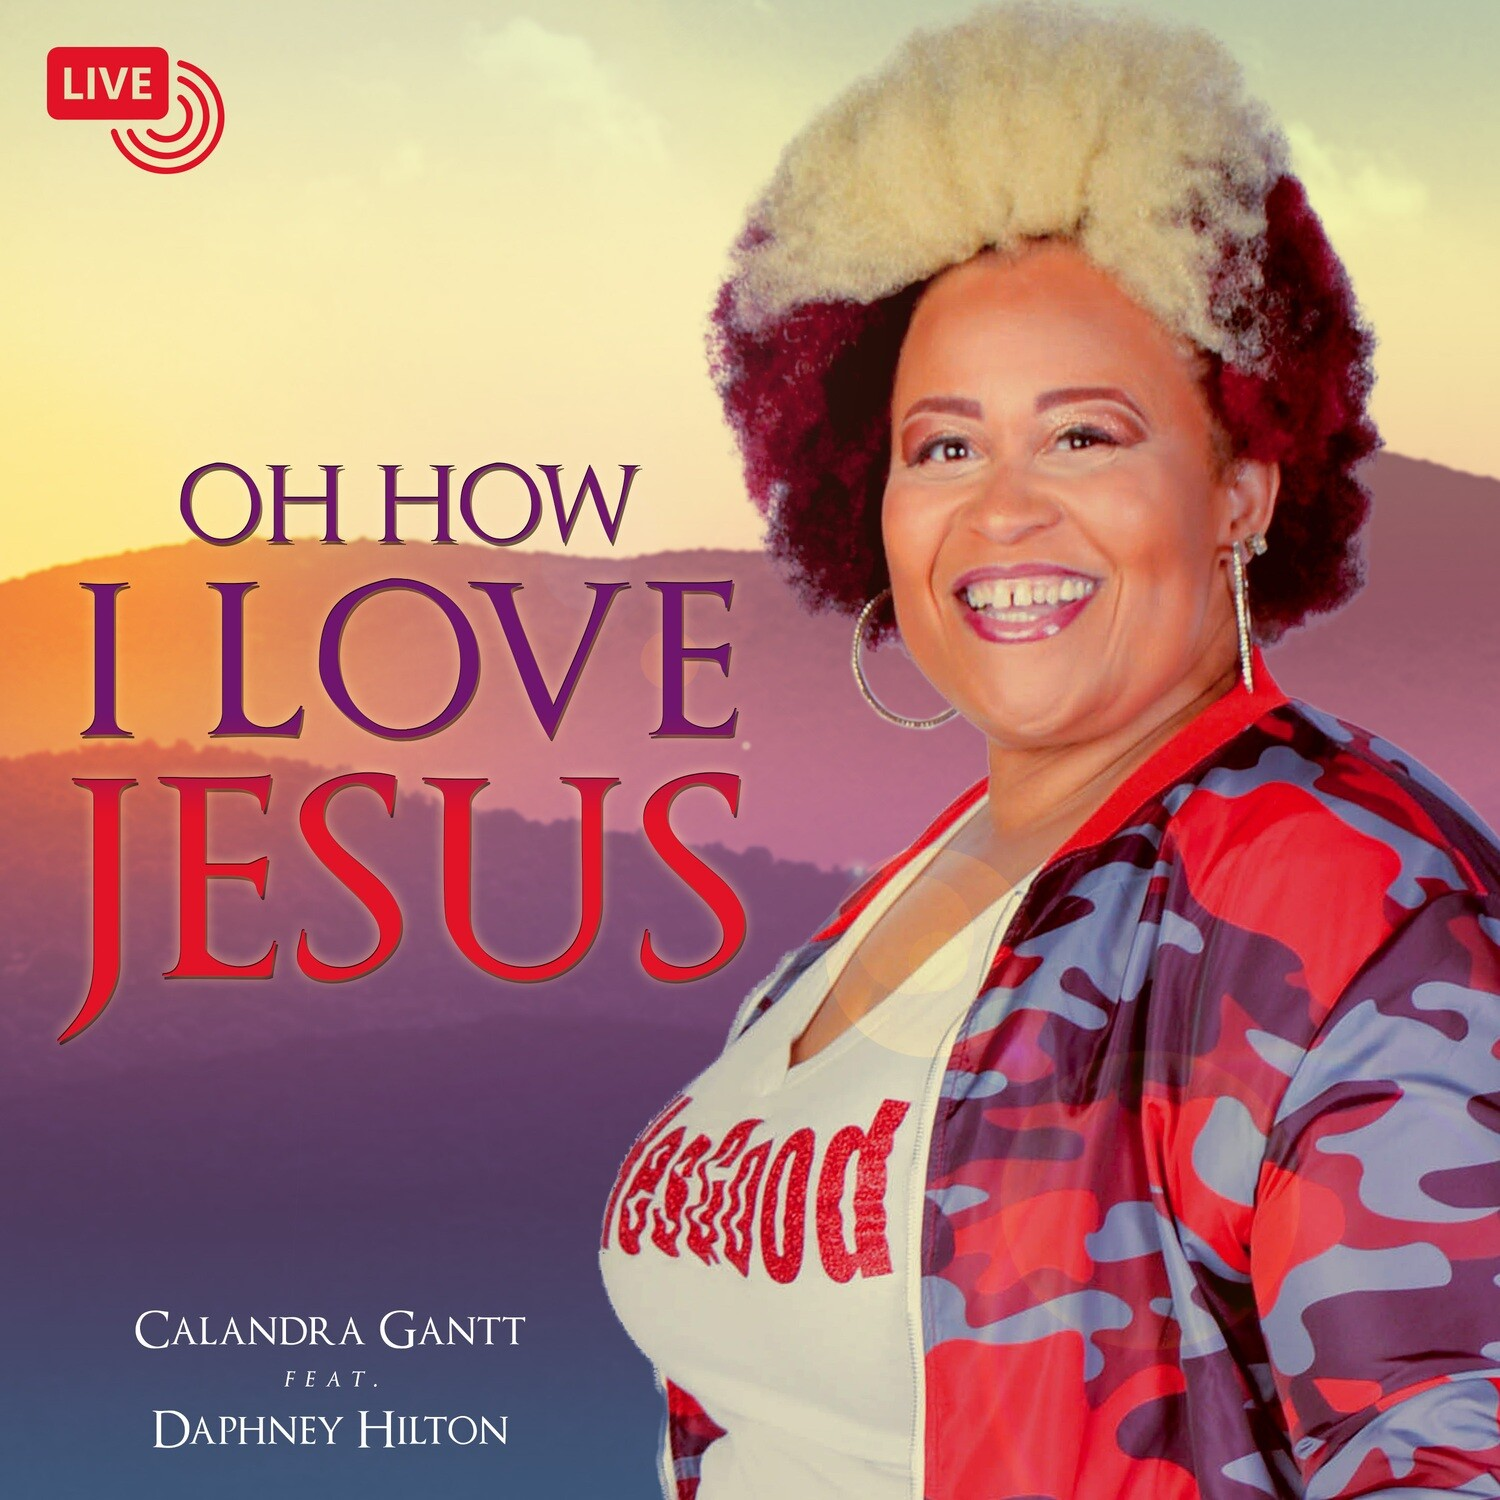 Oh How I Love Jesus (Live) Extended Version